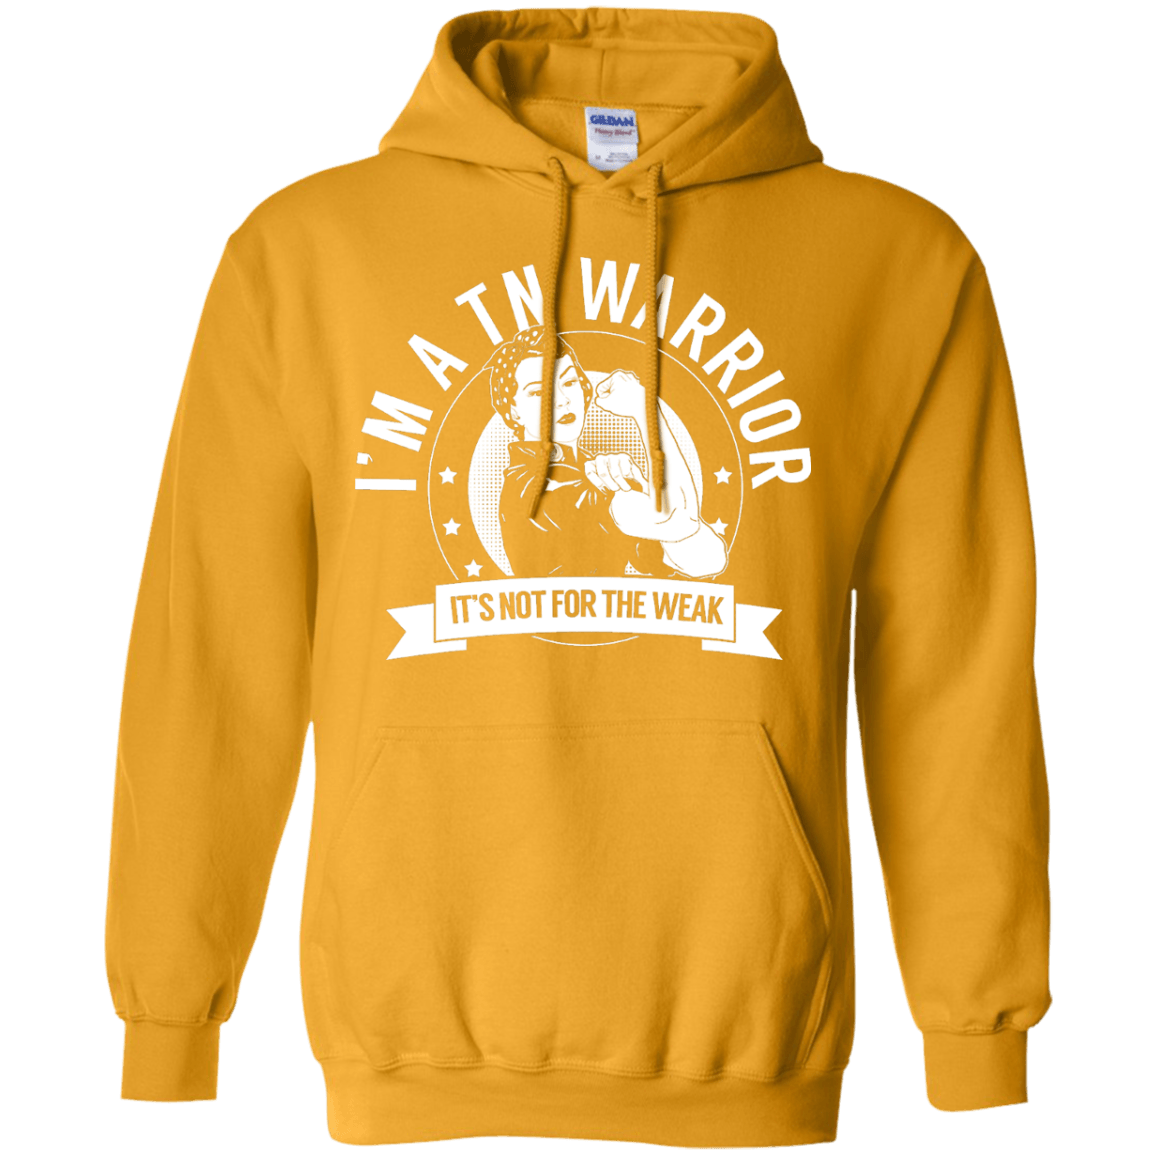 Trigeminal Neuralgia - TN Warrior Not For The Weak Pullover Hoodie 8 oz - The Unchargeables